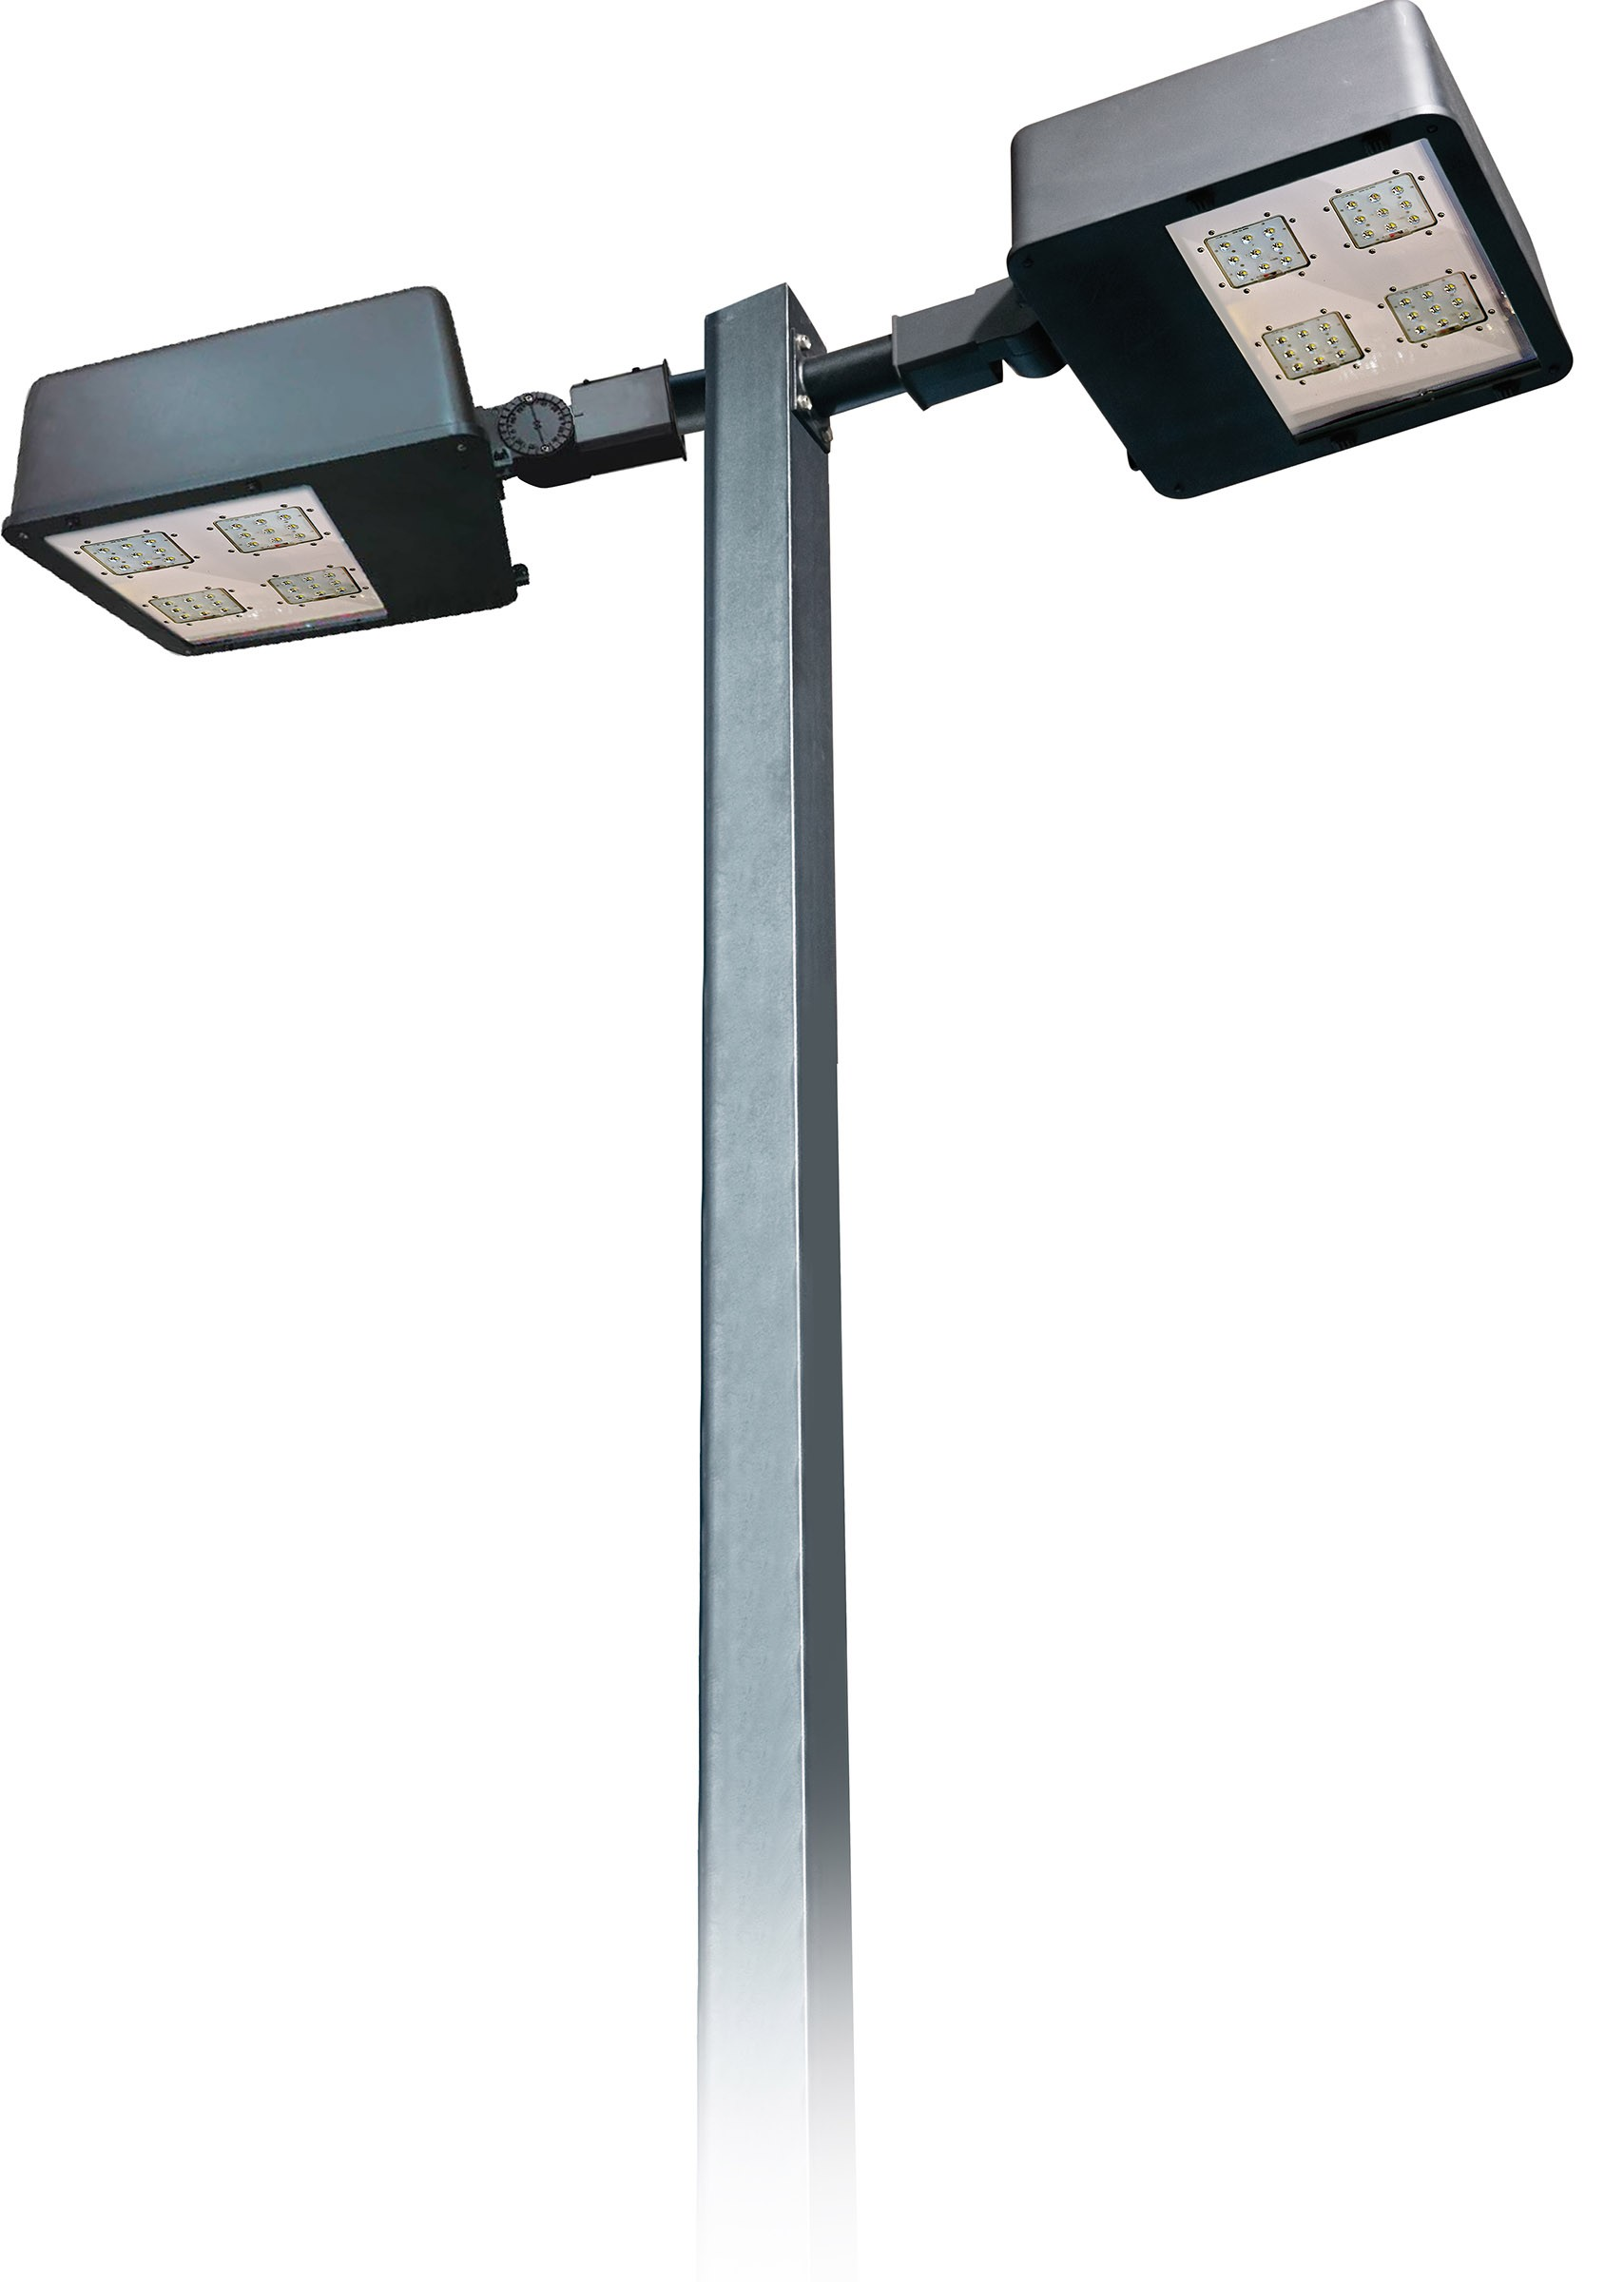 DF LED 7750  Double Headed Powder Coated Cast Aluminum Post Light With Pole / Parking lot lighting / Street Light